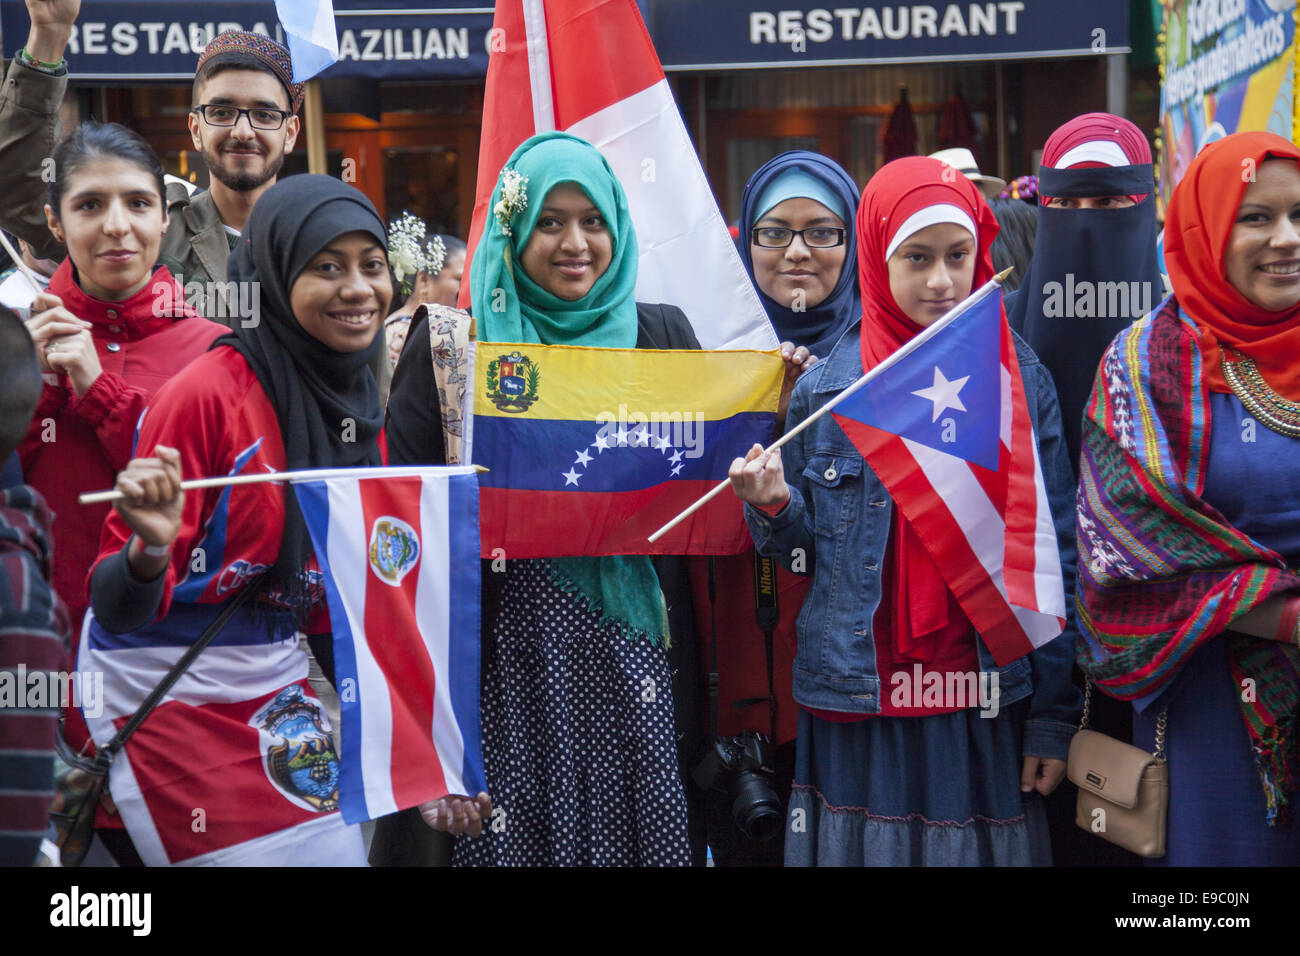 Hispanic Day Parade on 5th Avenue in NYC. Hispanic Muslims representing various Latin countries. - Stock Image